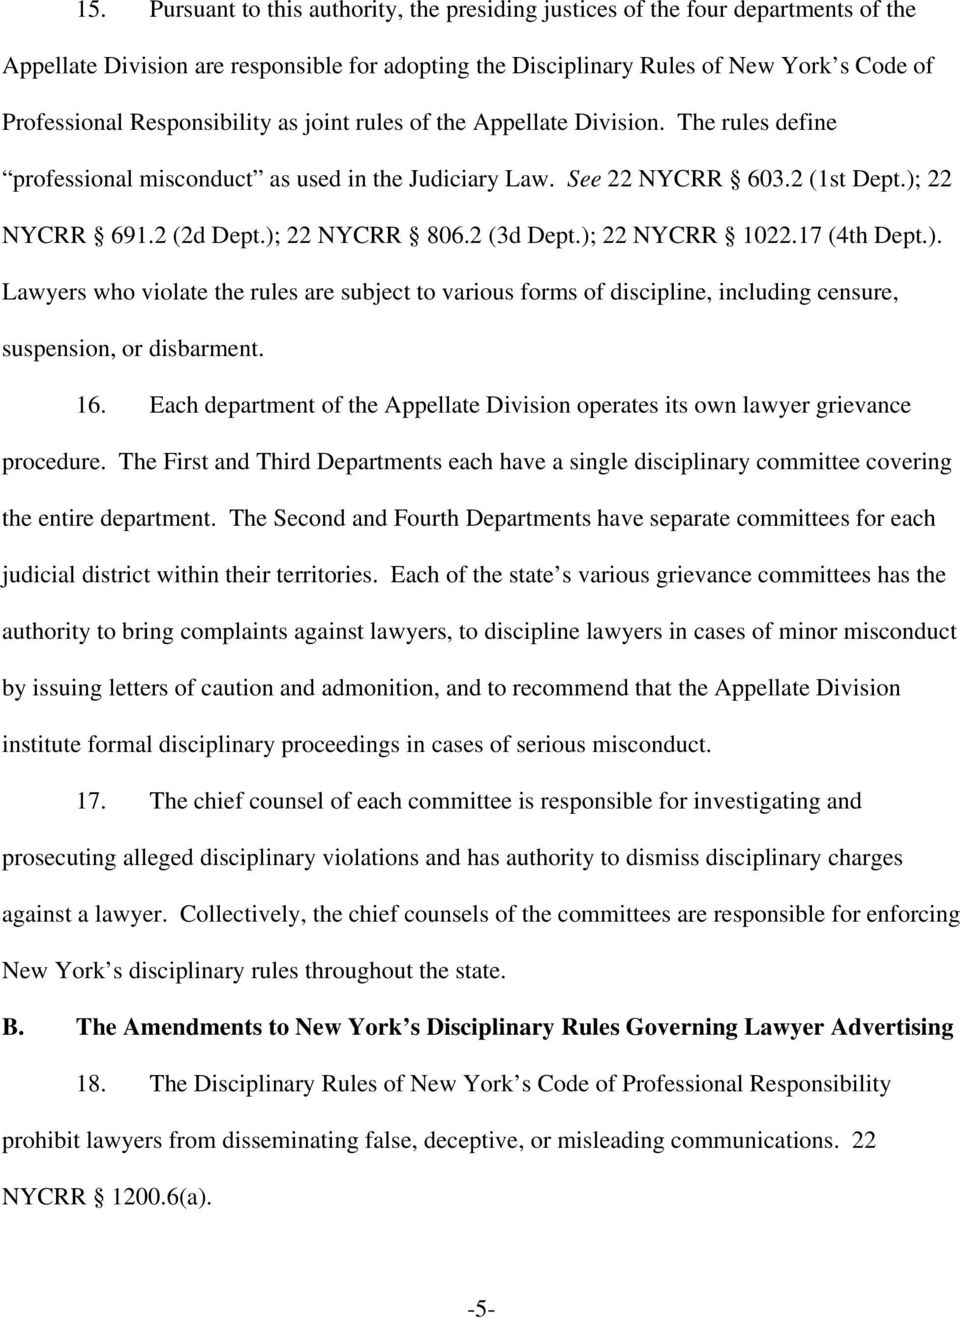 2 (3d Dept.; 22 NYCRR 1022.17 (4th Dept.. Lawyers who violate the rules are subject to various forms of discipline, including censure, suspension, or disbarment. 16.